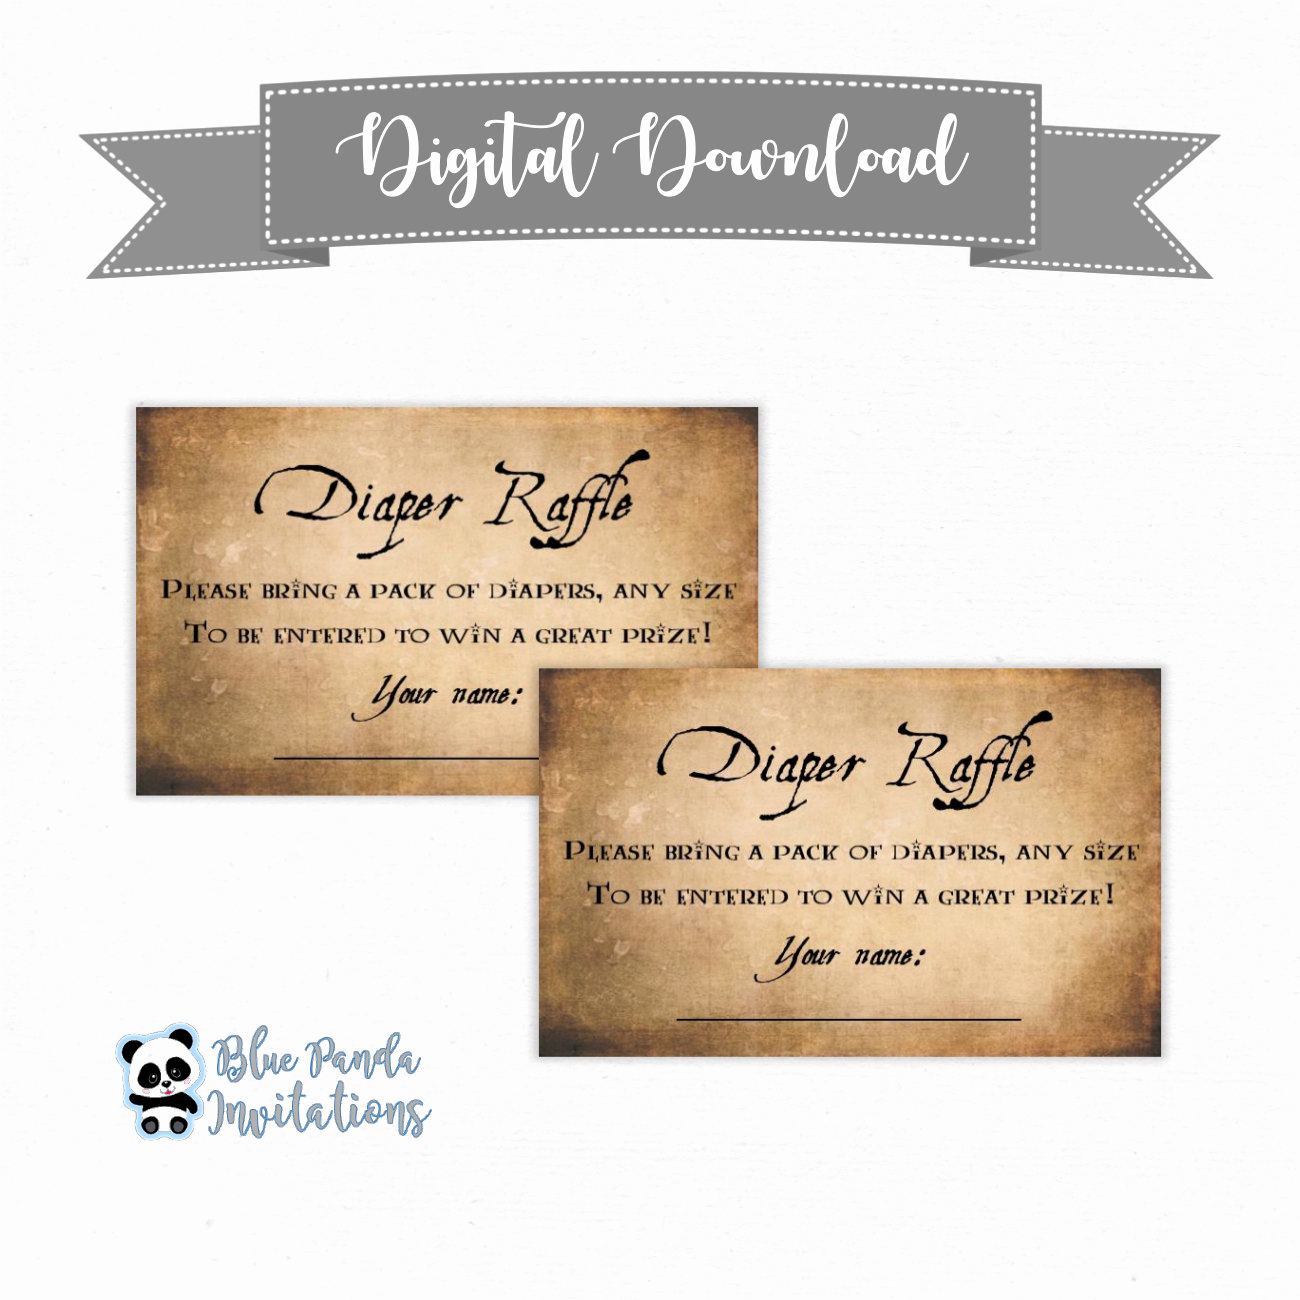 Diaper Raffle Wording On Invitation Luxury Diaper Raffle Invitation Inserts Baby Shower Downloadable